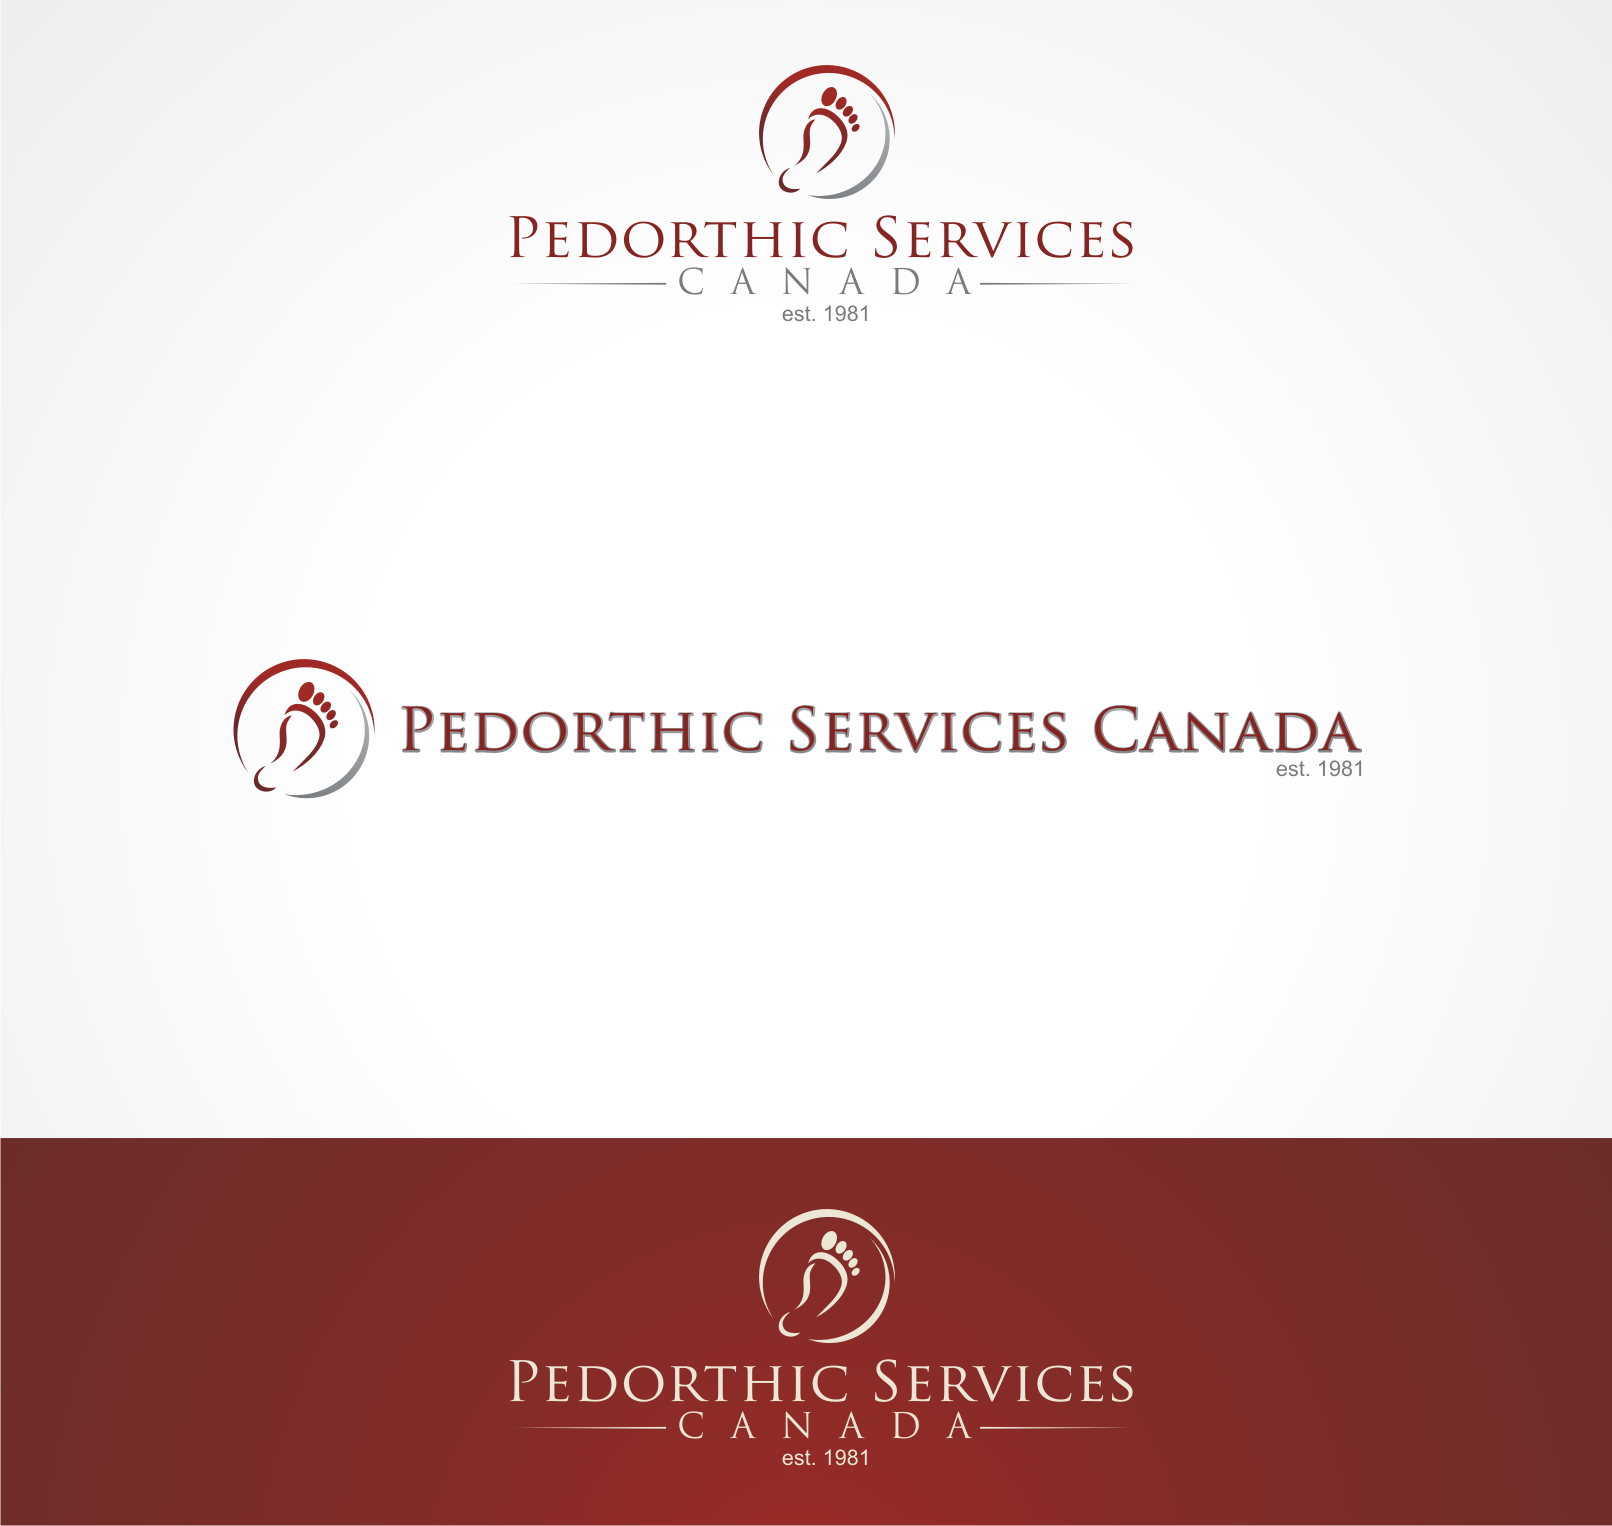 Pedorthic Services Canada Needs a  NEW LOGO!